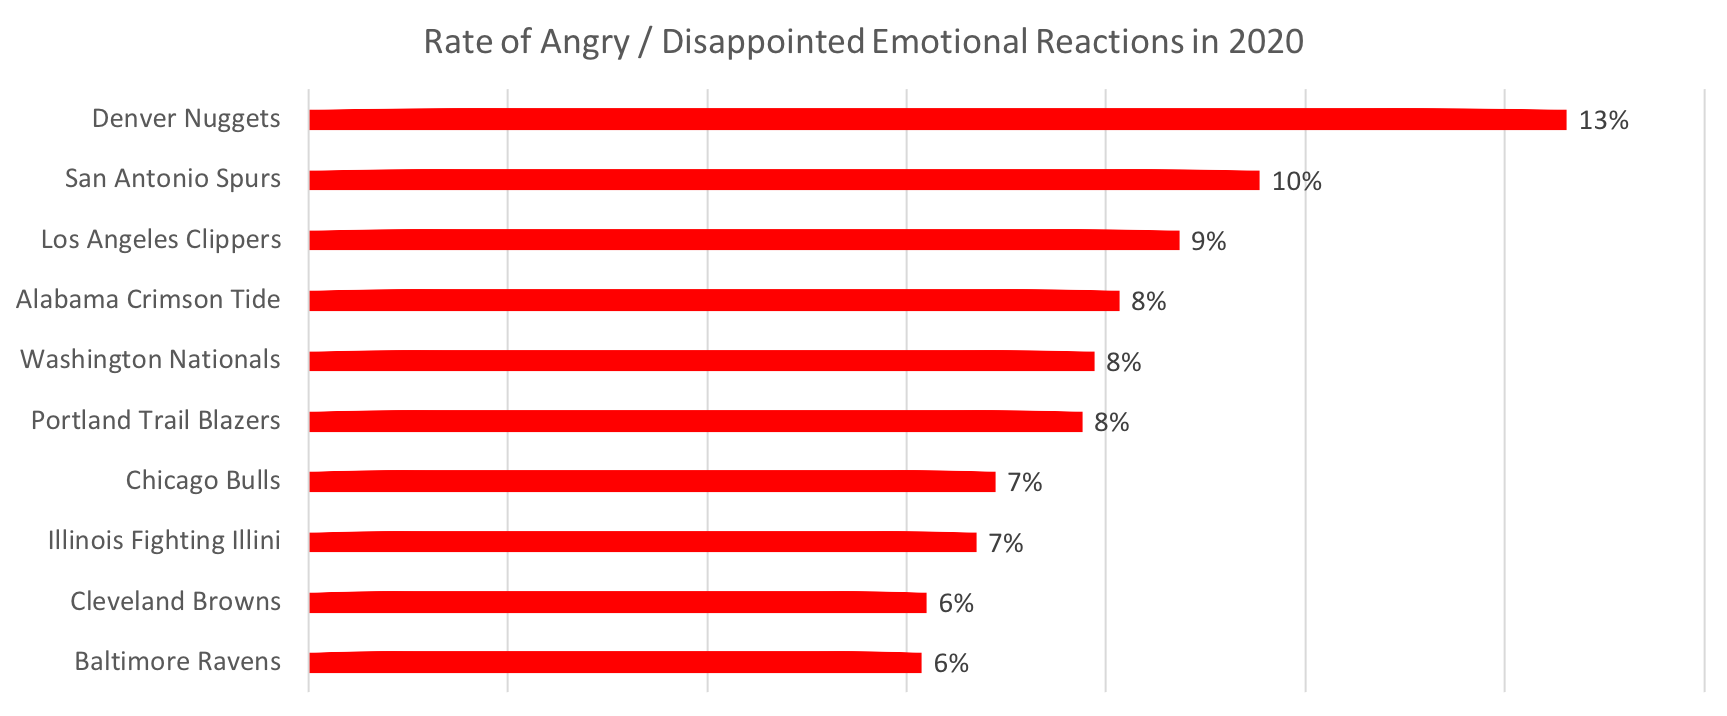 Source: Canvs Explore, Sports Teams with Highest Rates of Angry/Disappointed Emotional Reactions in 2020